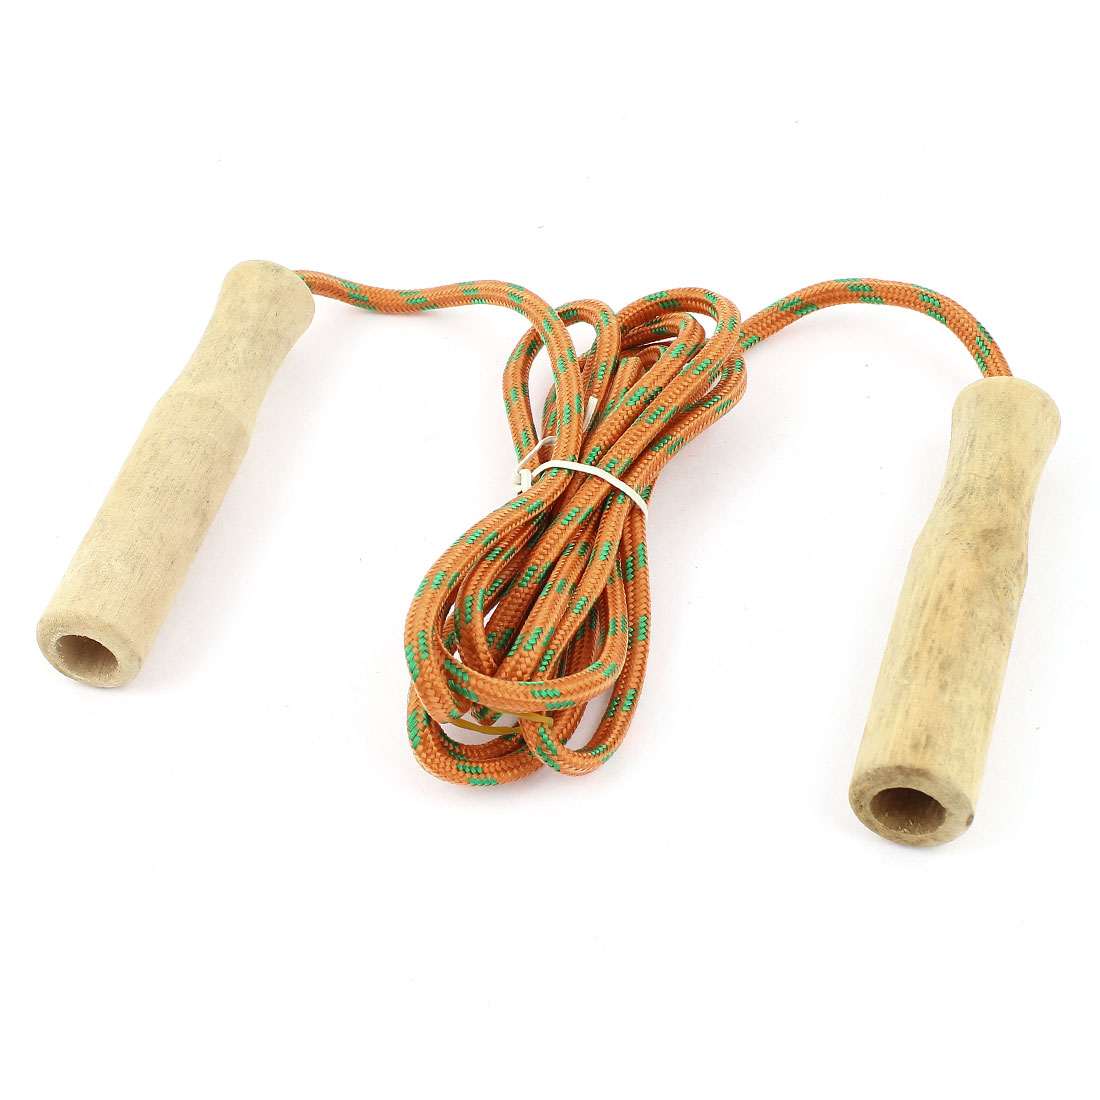 Wooden Handle Sports Exercise Jump Skip Skipping Rope Orange 2 Meter Length